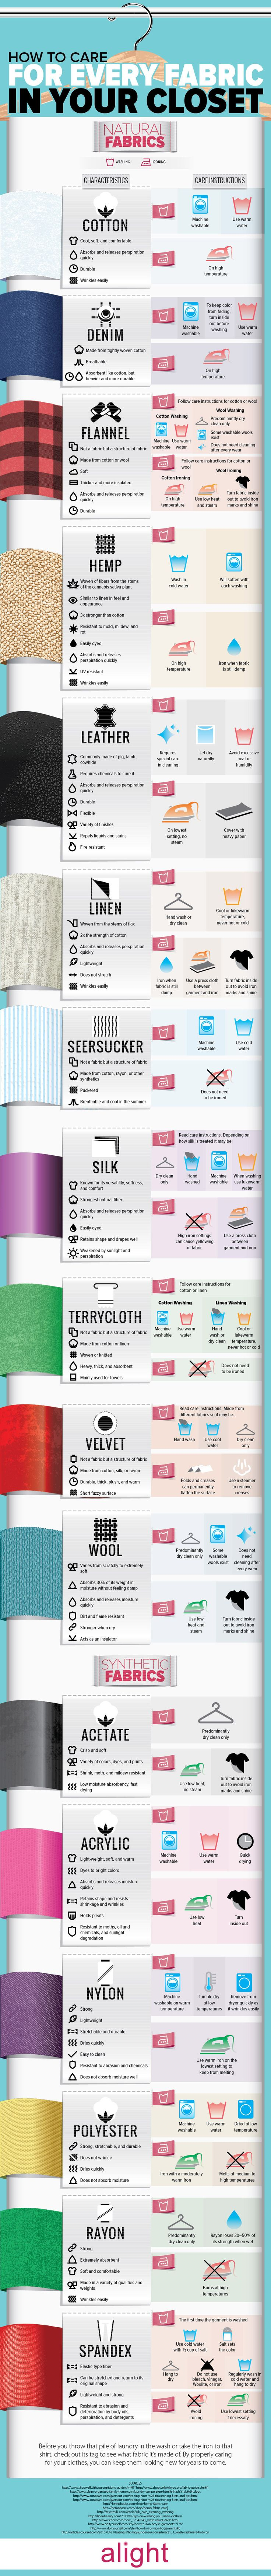 Washing your clothes according to fabric rather than color can not only save you money , it could make laundering your clothes more efficient. Here's a guide to washing and ironing various fabric types.